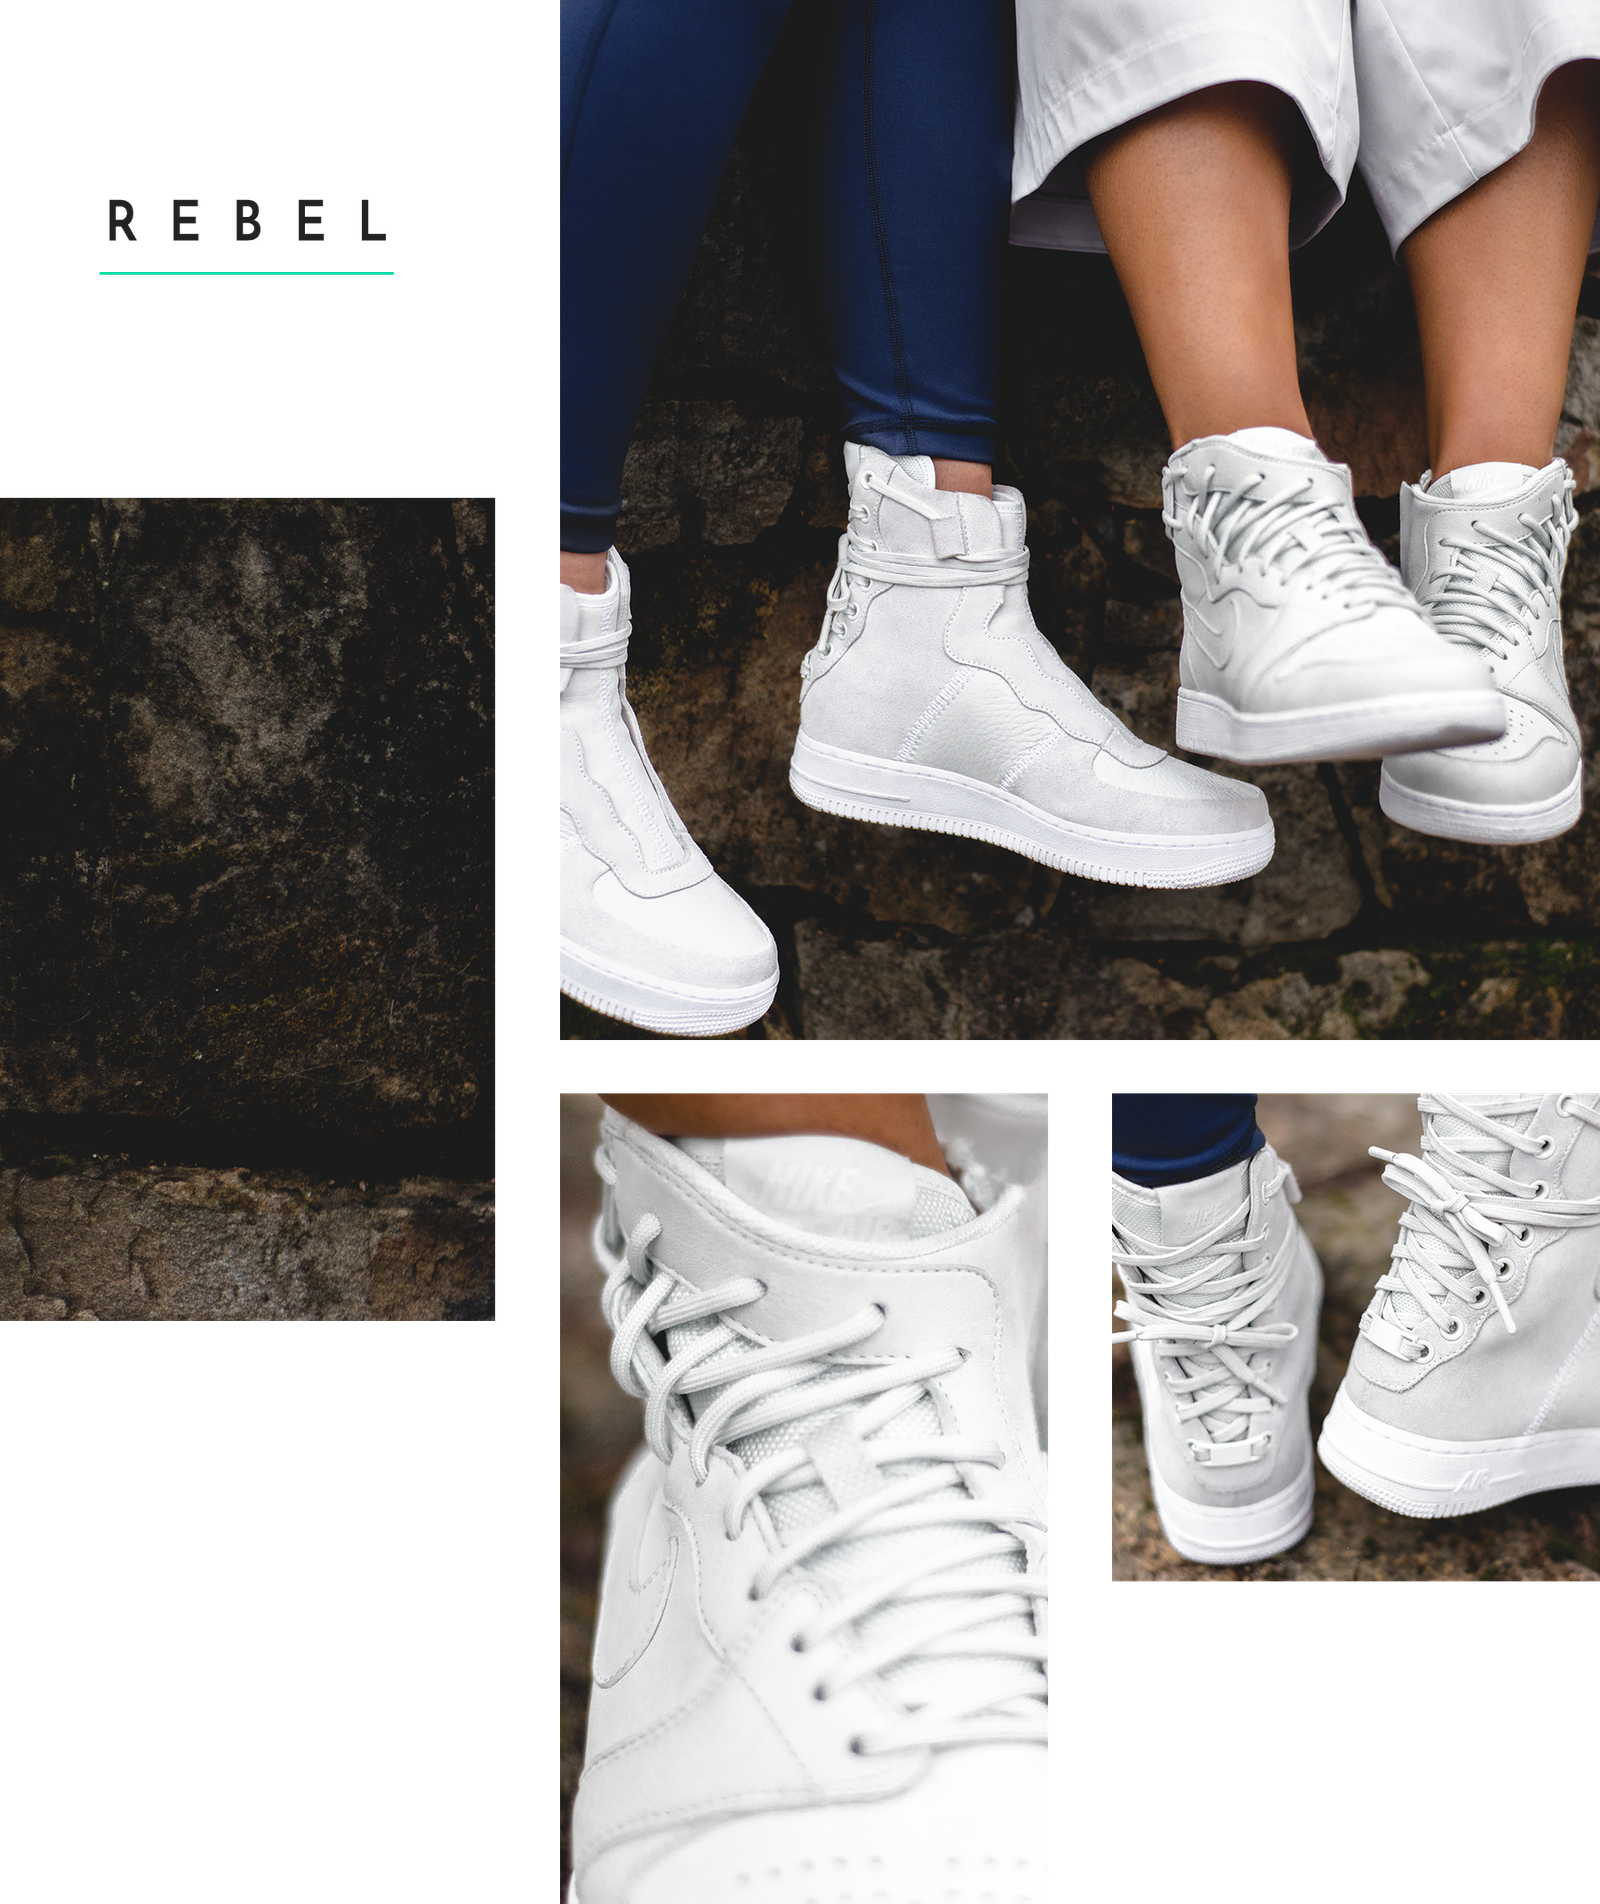 41cfb2f190b4 Nike The 1 Reimagined Rebel Air Force Air Jordan High Top Boot Sneaker  Laces Back White